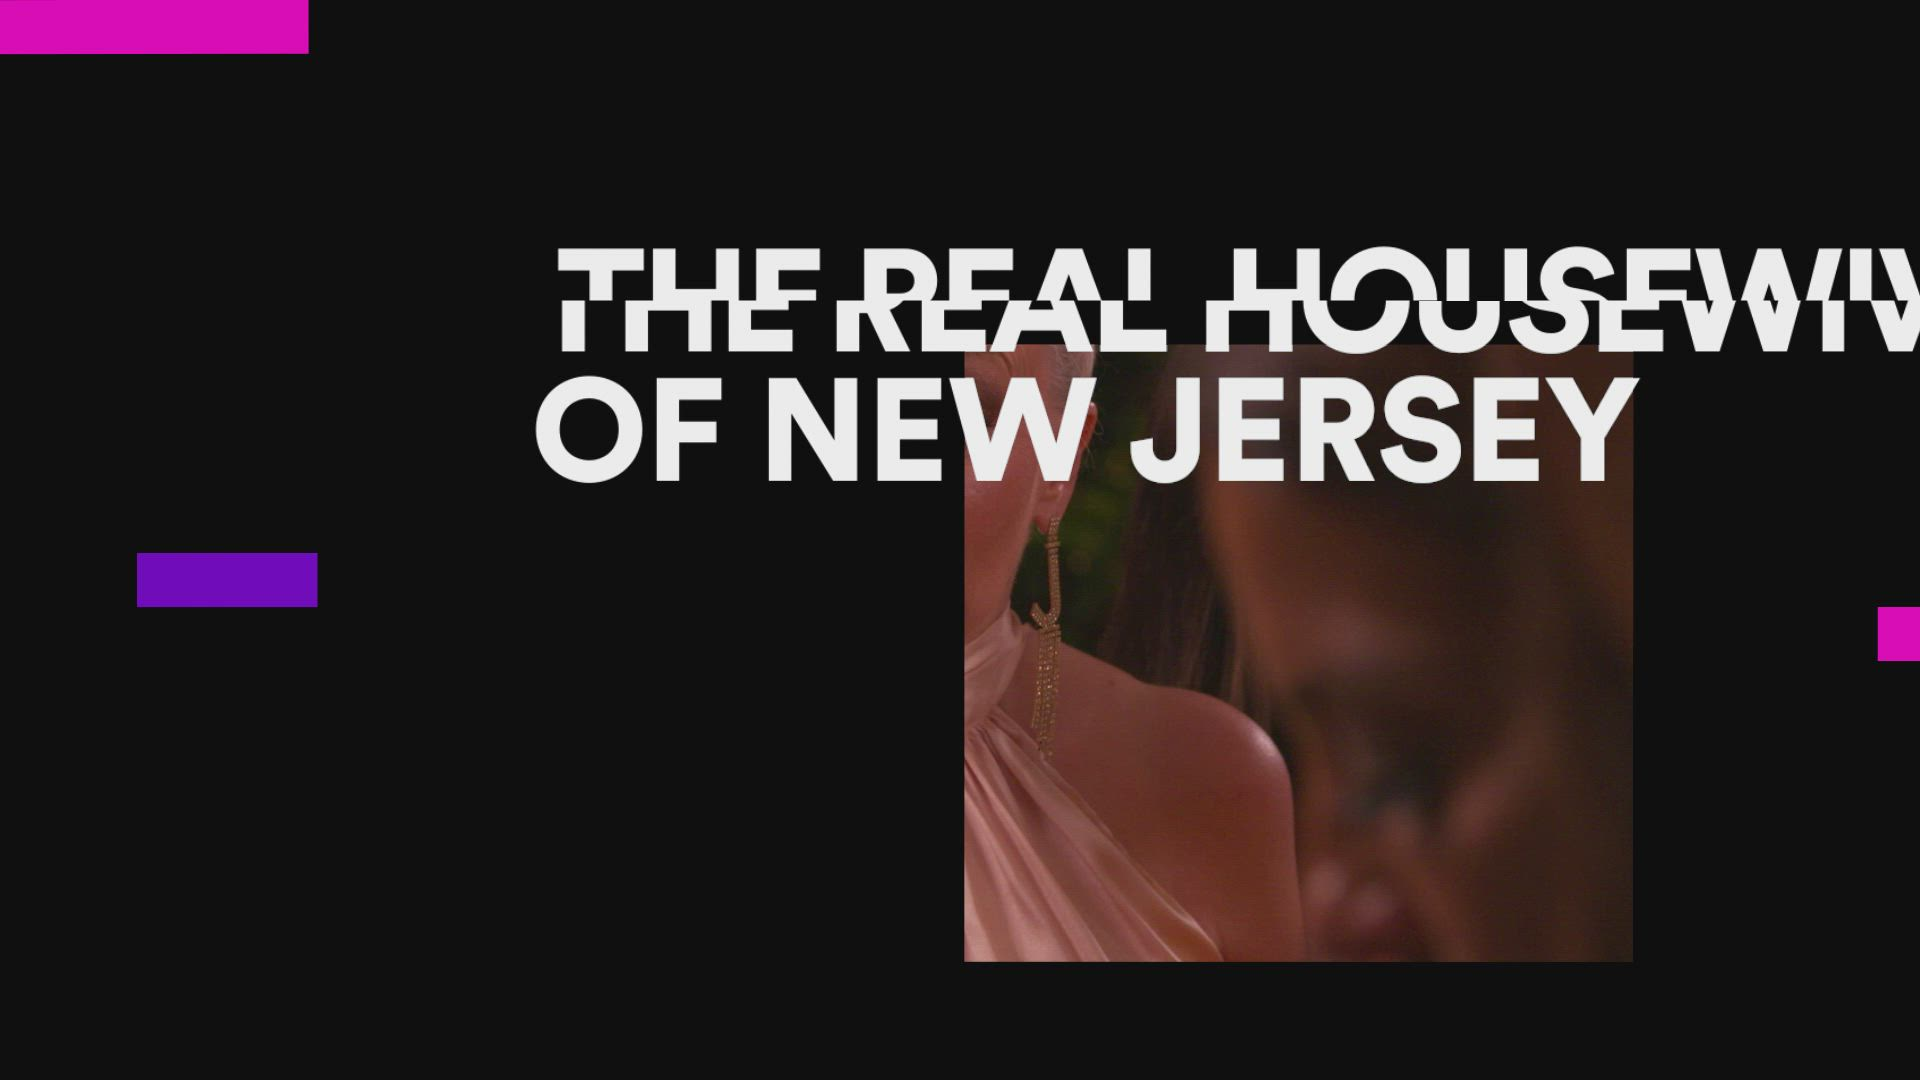 The Real Housewives of New Jersey Season 11 Preview. Go to a video page.